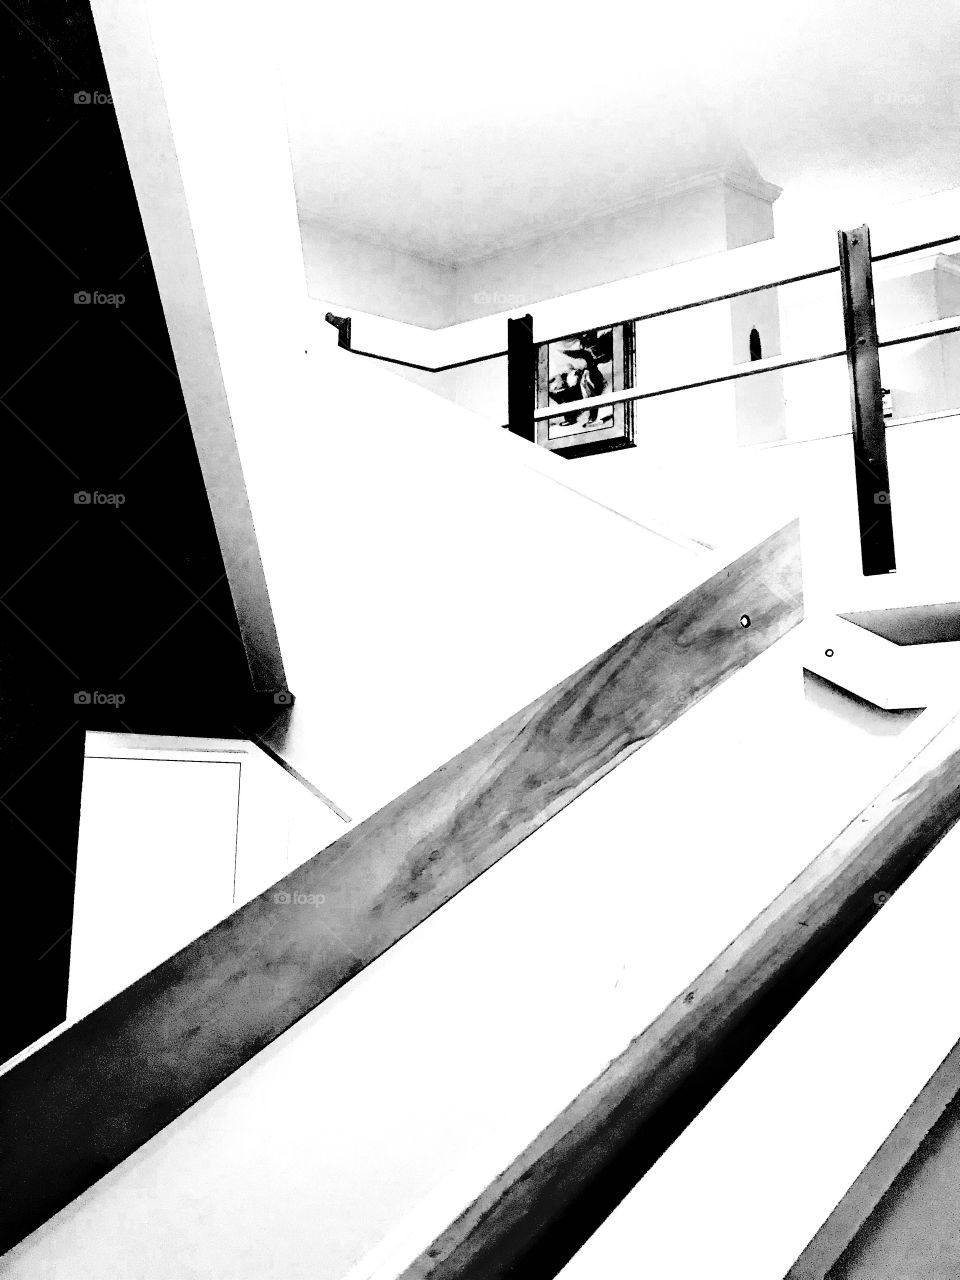 Architectural black and white photo of a stairway with a turn in it makes for a fun photo!